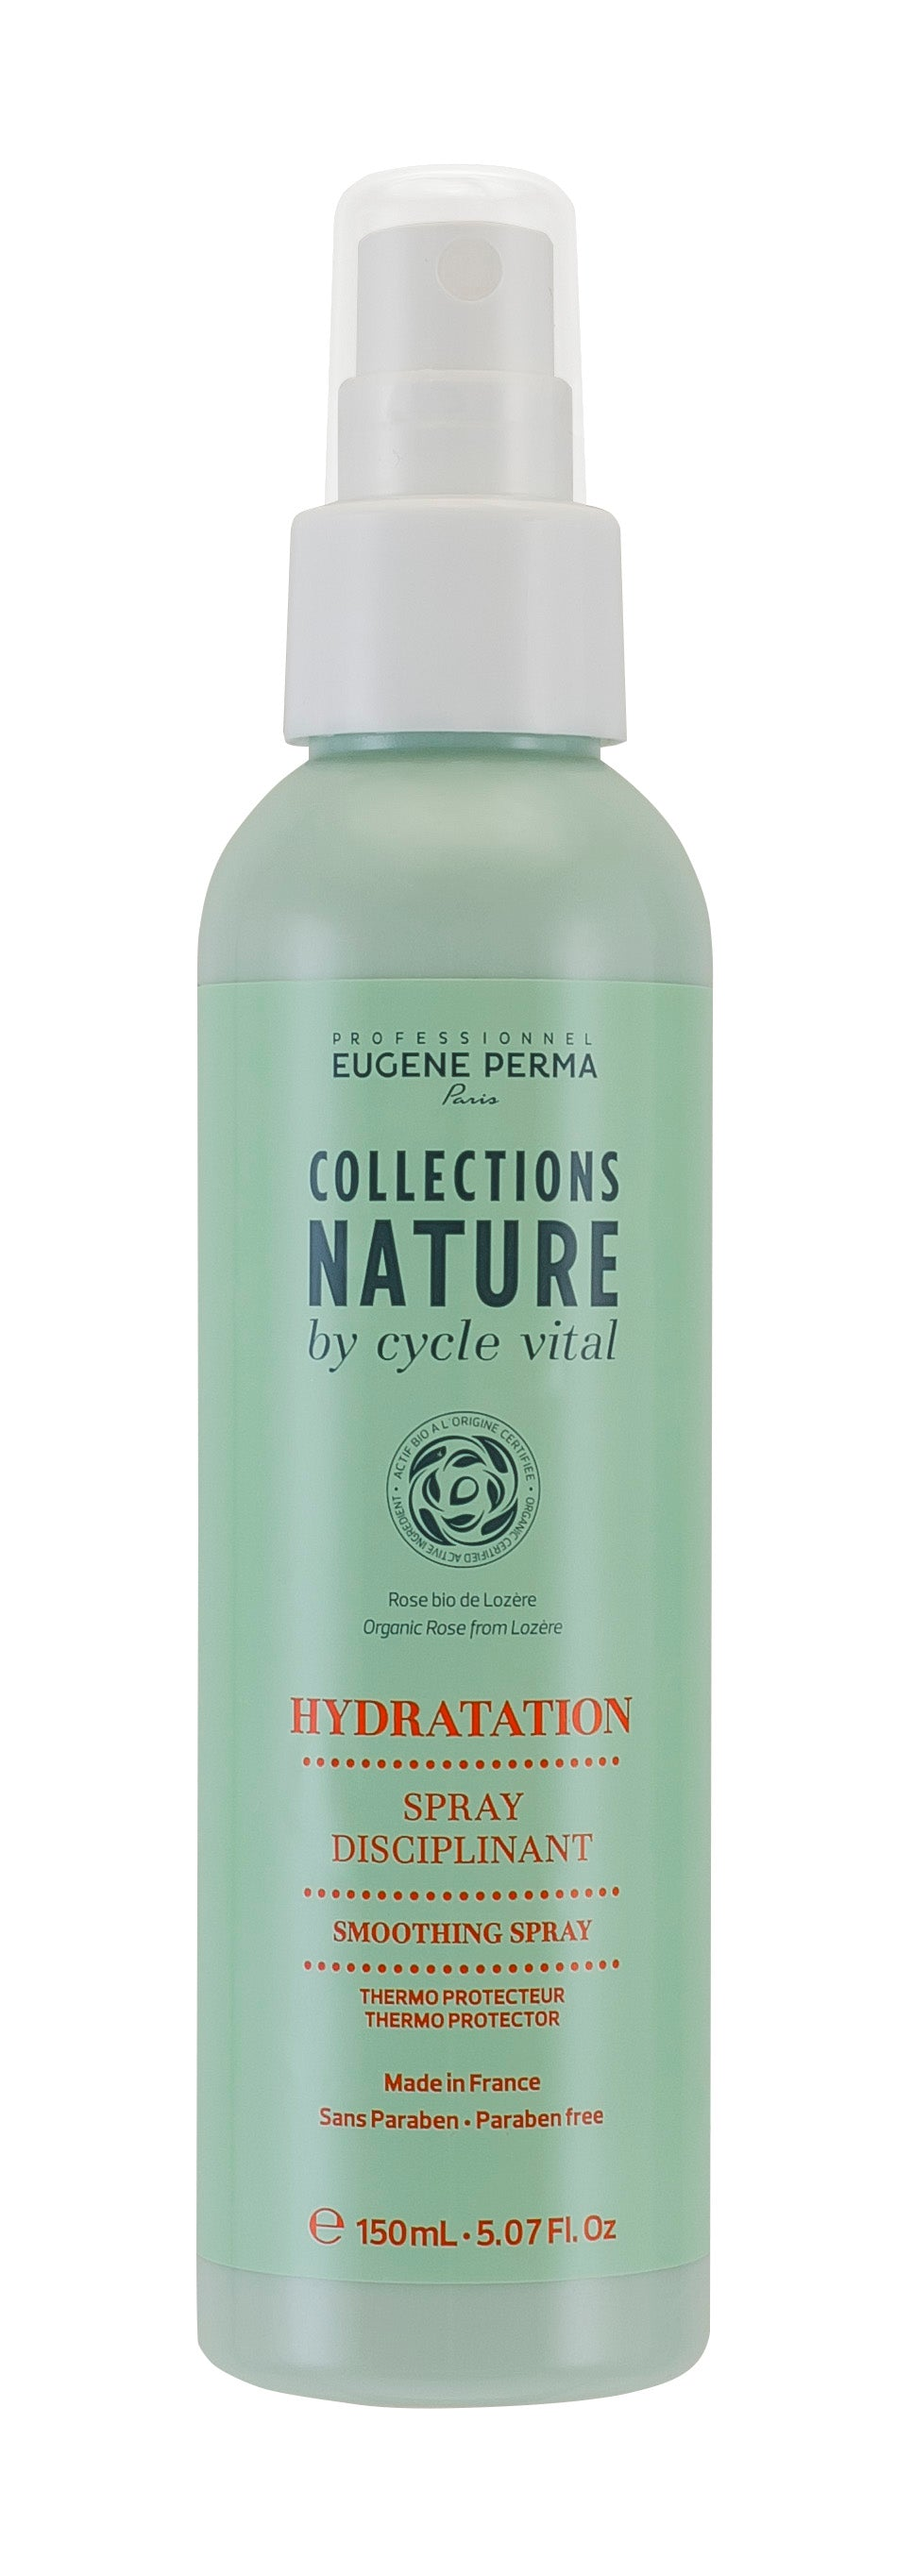 COLLECTION NATURE Spray Disciplinant Thermoprotecteur 150 ML | Eugène Perma Professionnel